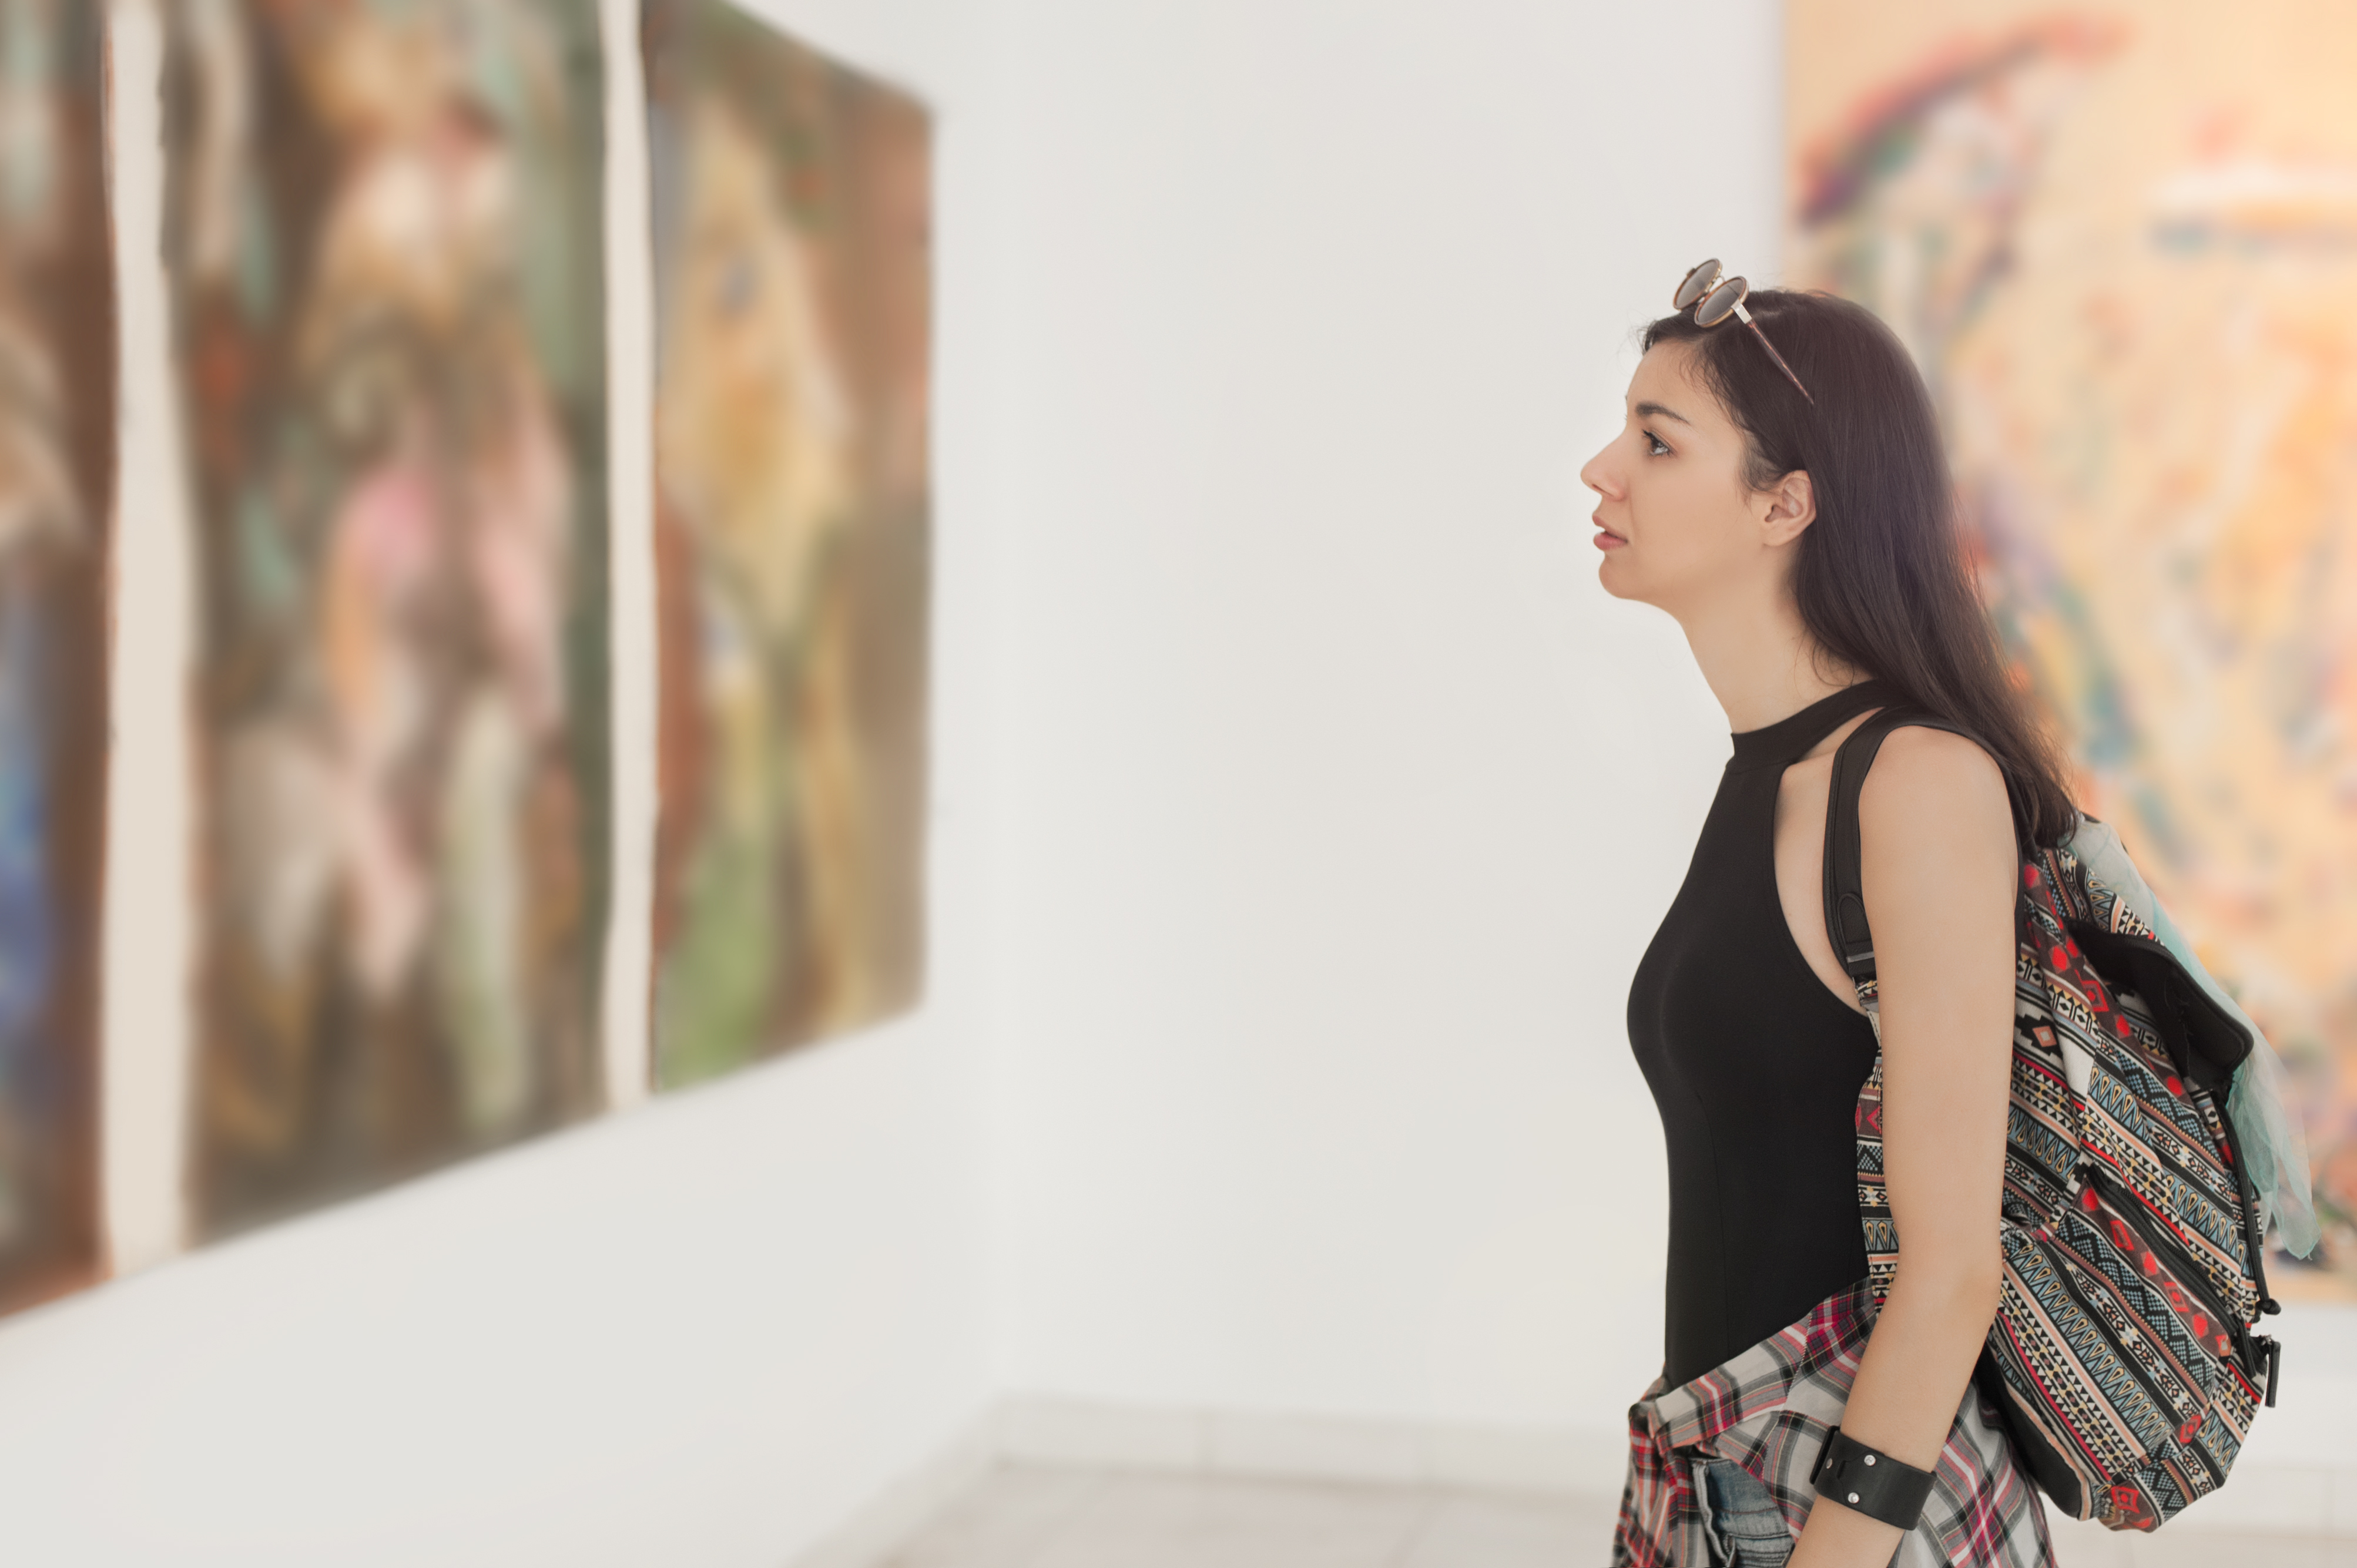 a woman looking at art in a museum